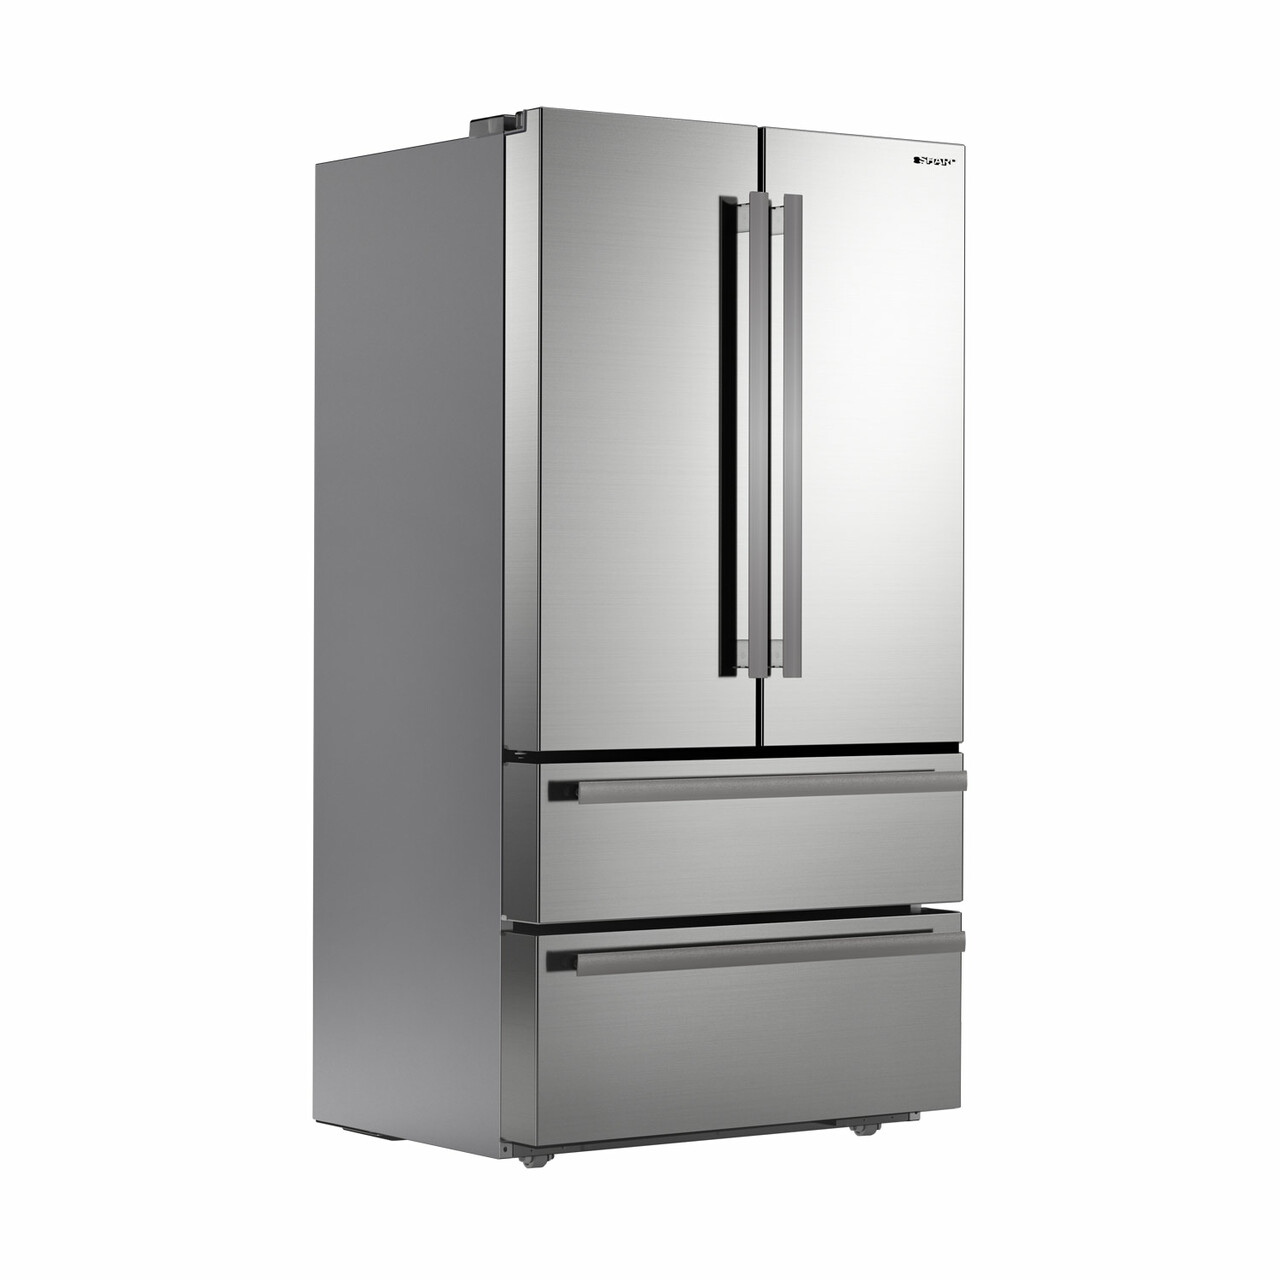 Sharp French 4-Door Refrigerator (SJG2351FS) – right angle view